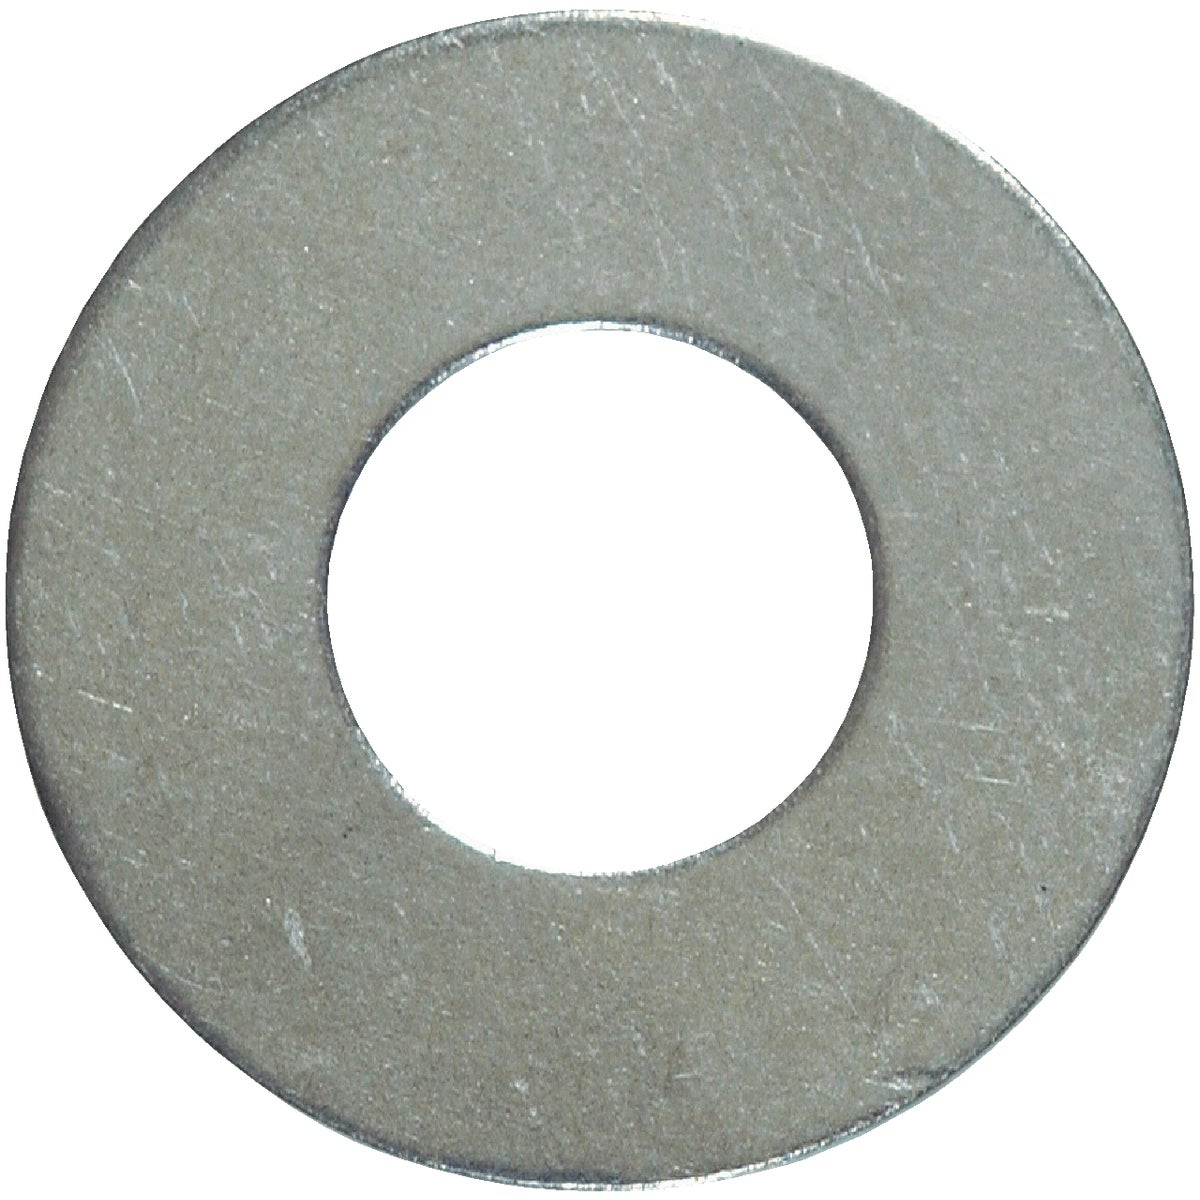 #10 Ss Flat Washer